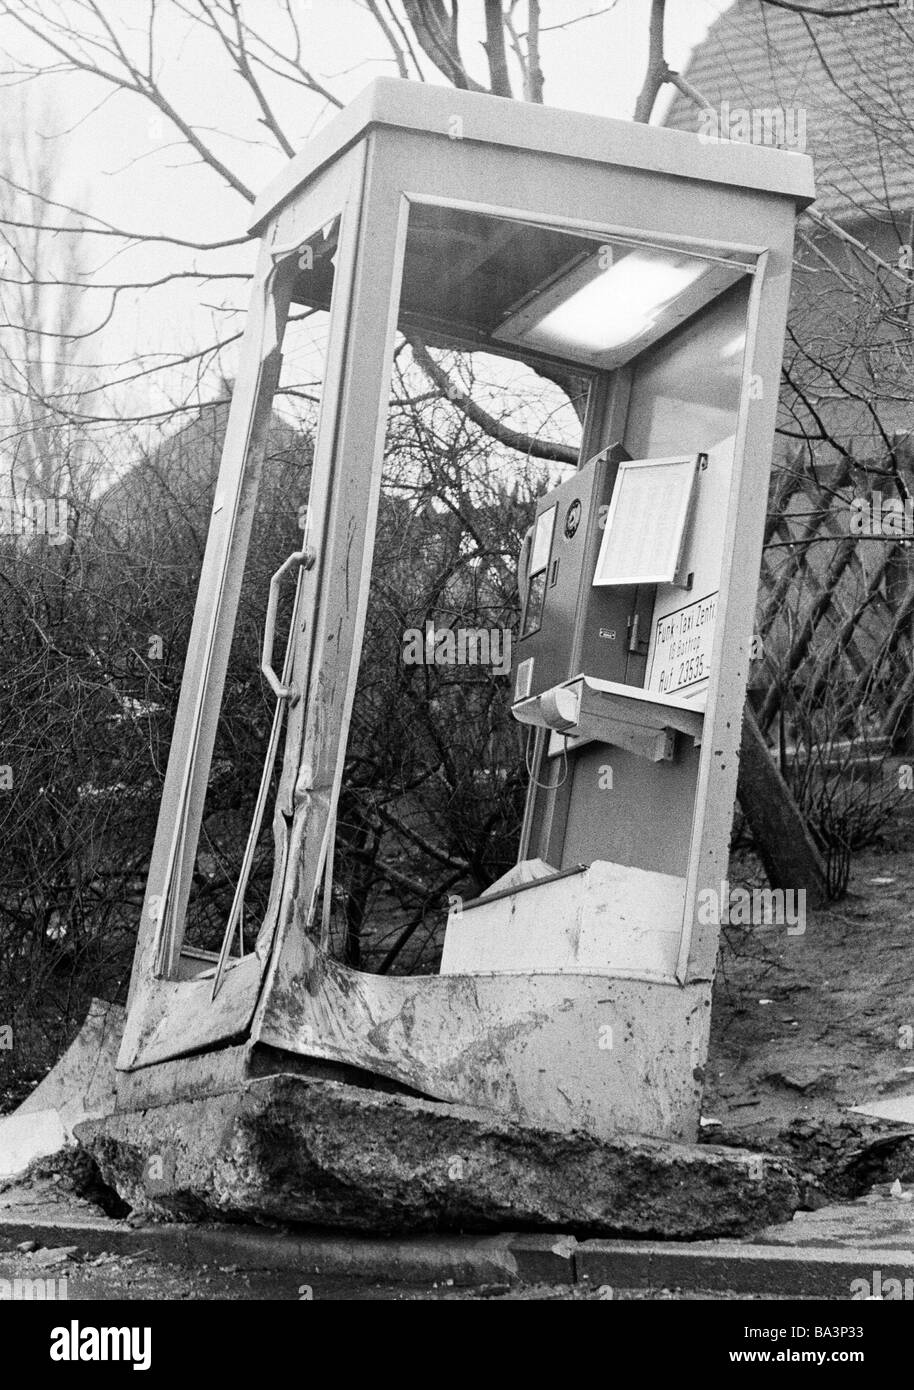 Seventies, black and white photo, destruction, vandalism, telephone box was destroyed and pulled out of the ground - Stock Image